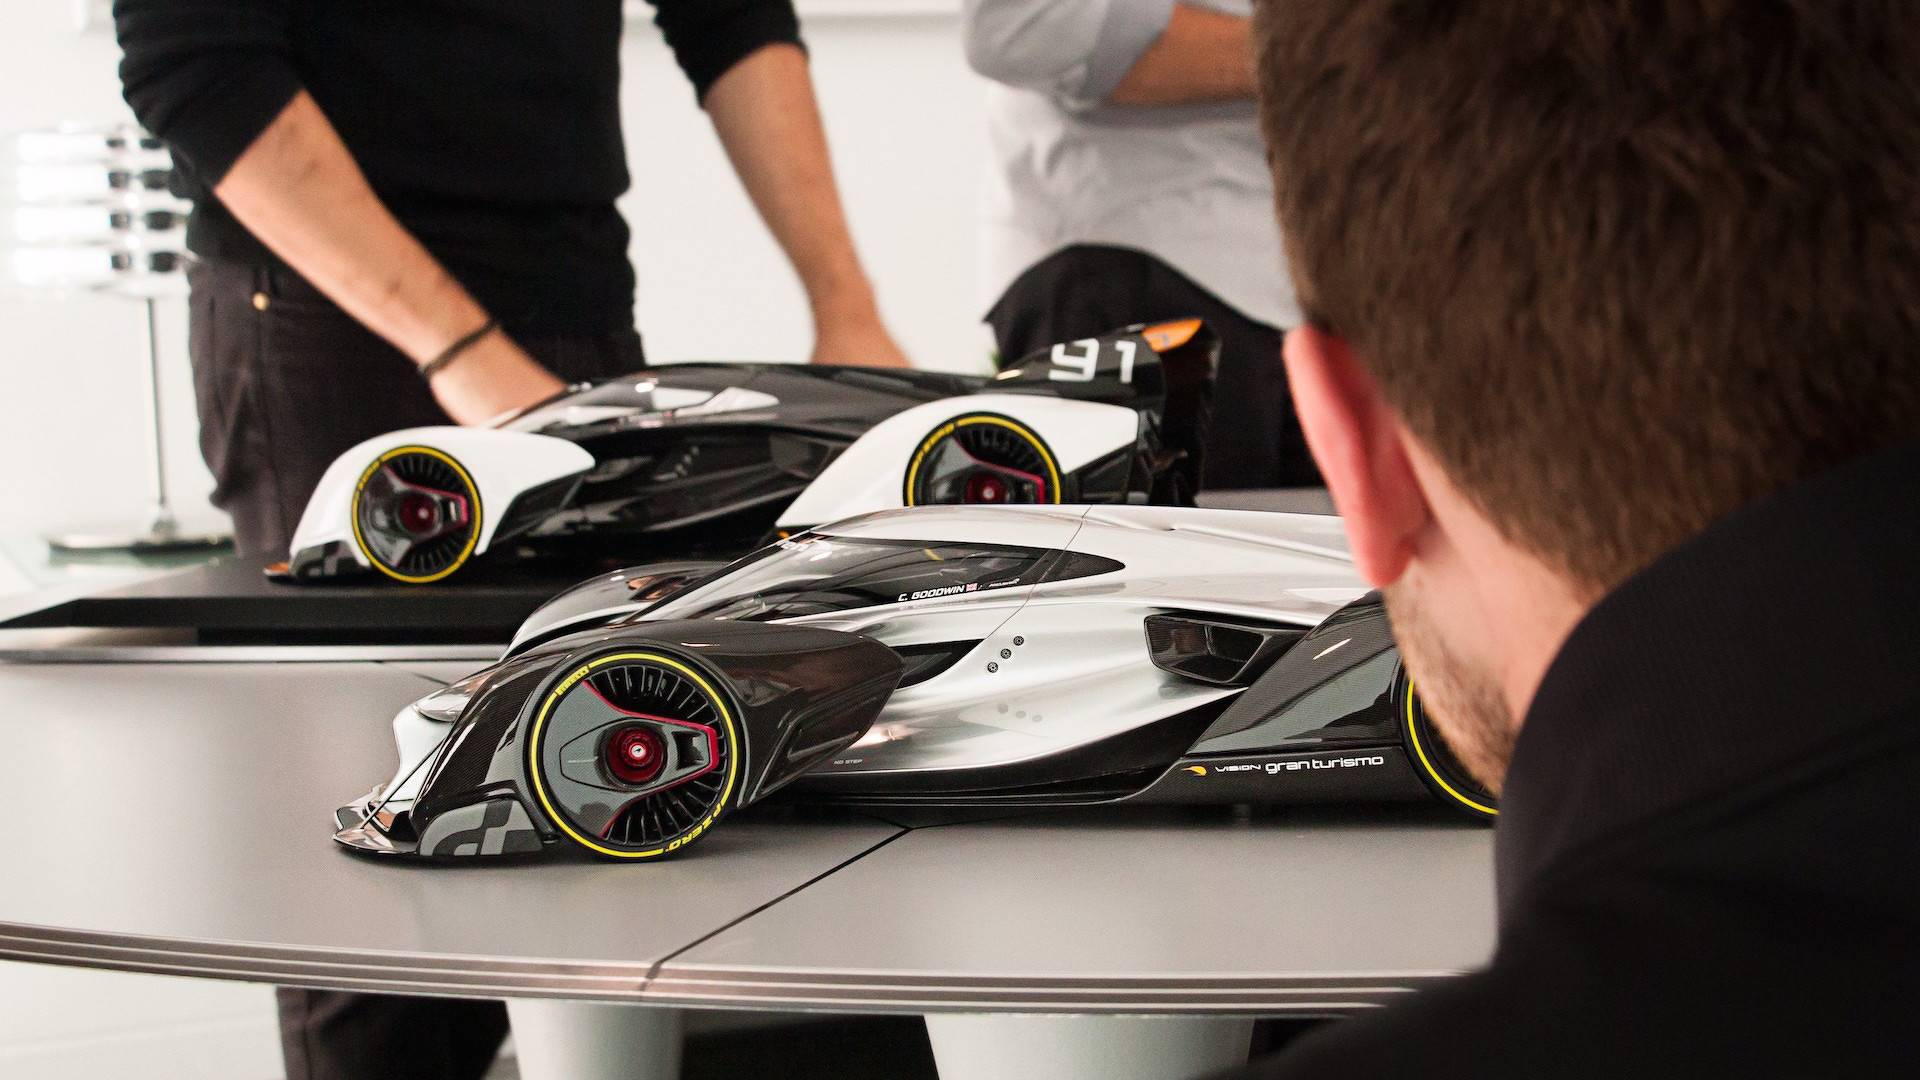 mclaren-ultimate-vision-gt-scale-model (28)